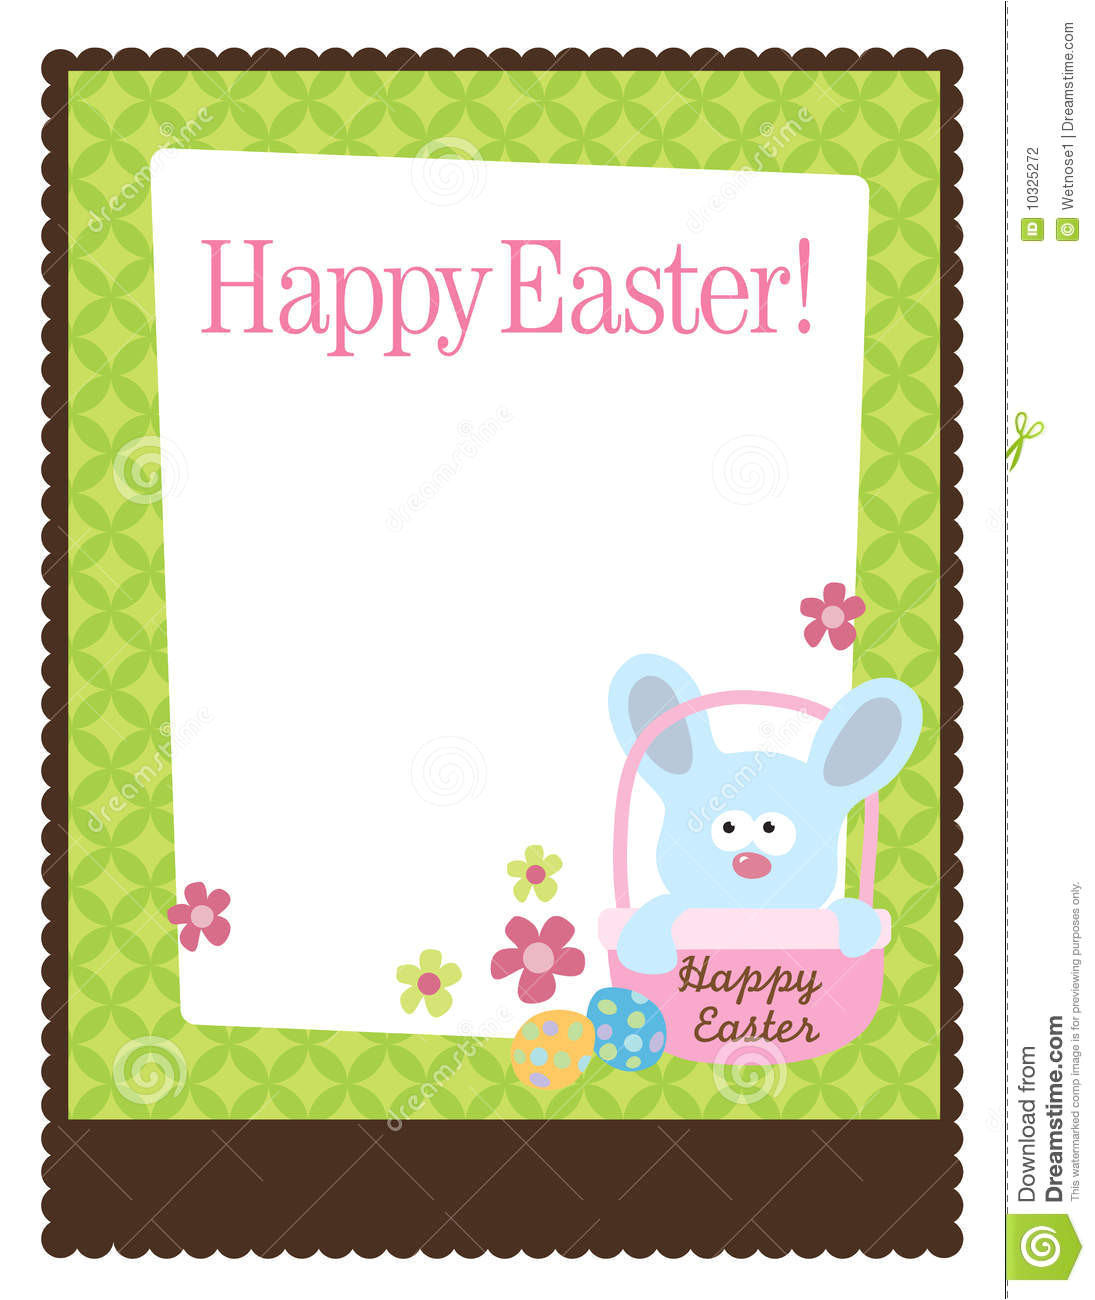 stock photography 8 5x11 easter flyer template image10325272